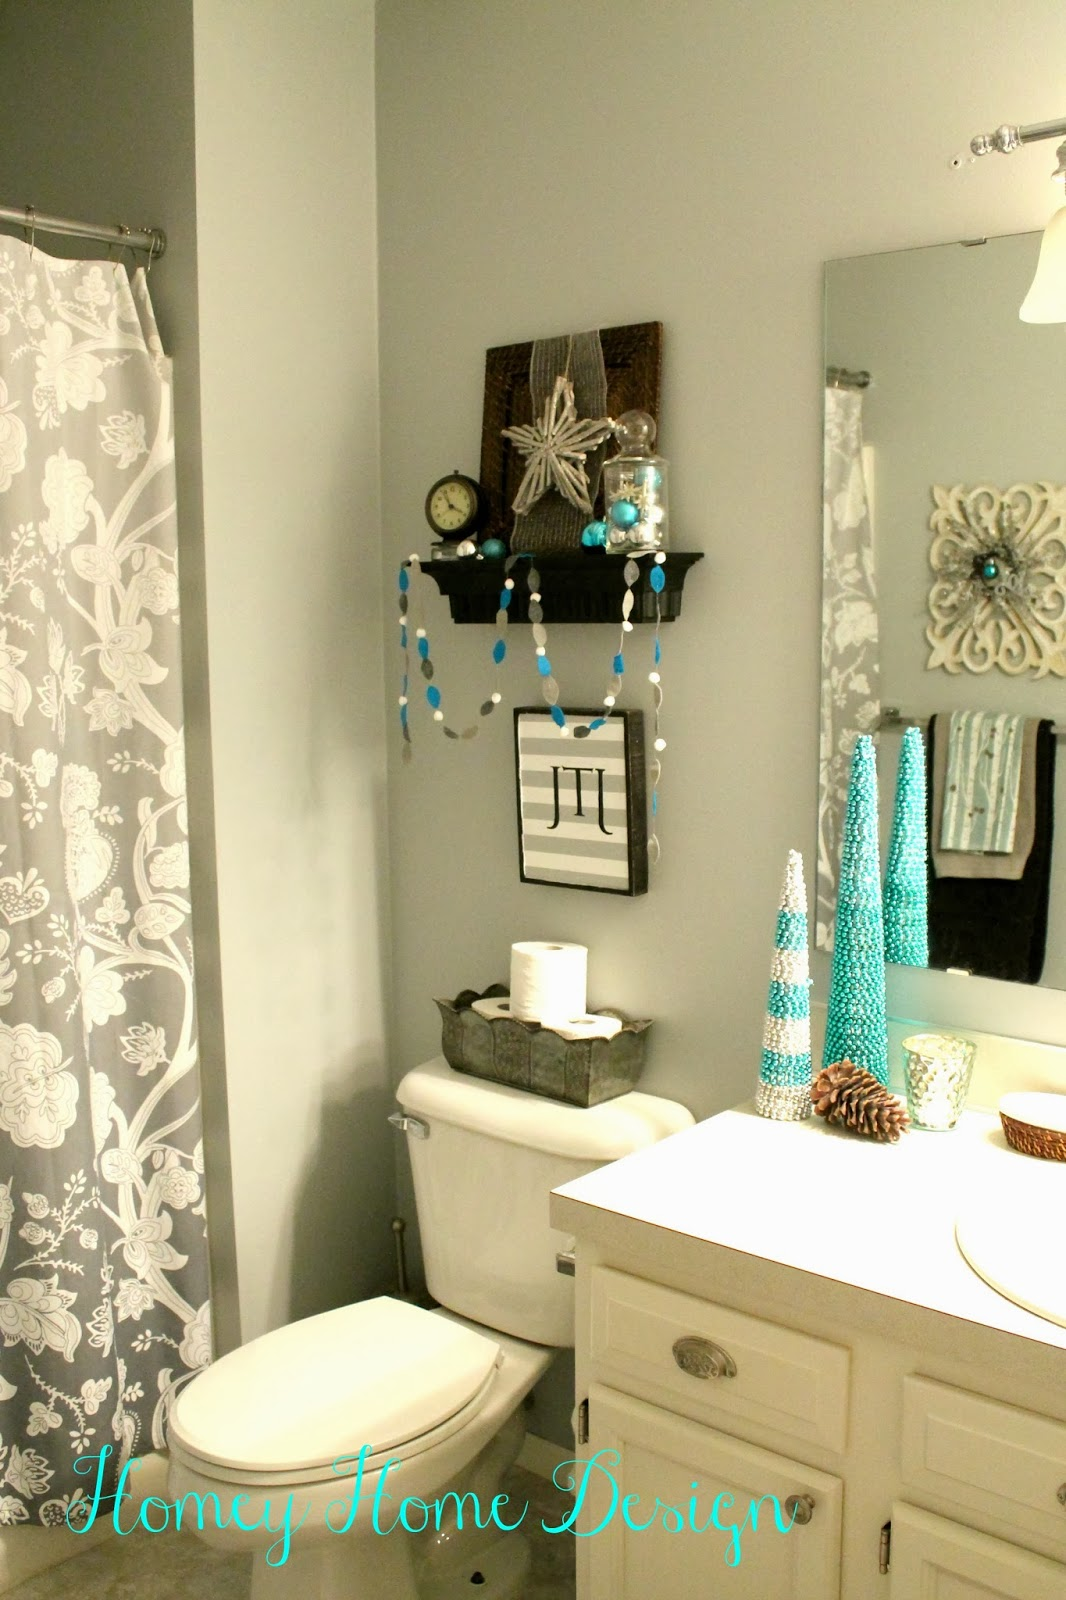 Homey home design bathroom christmas ideas for Bathroom decor ideas accessories